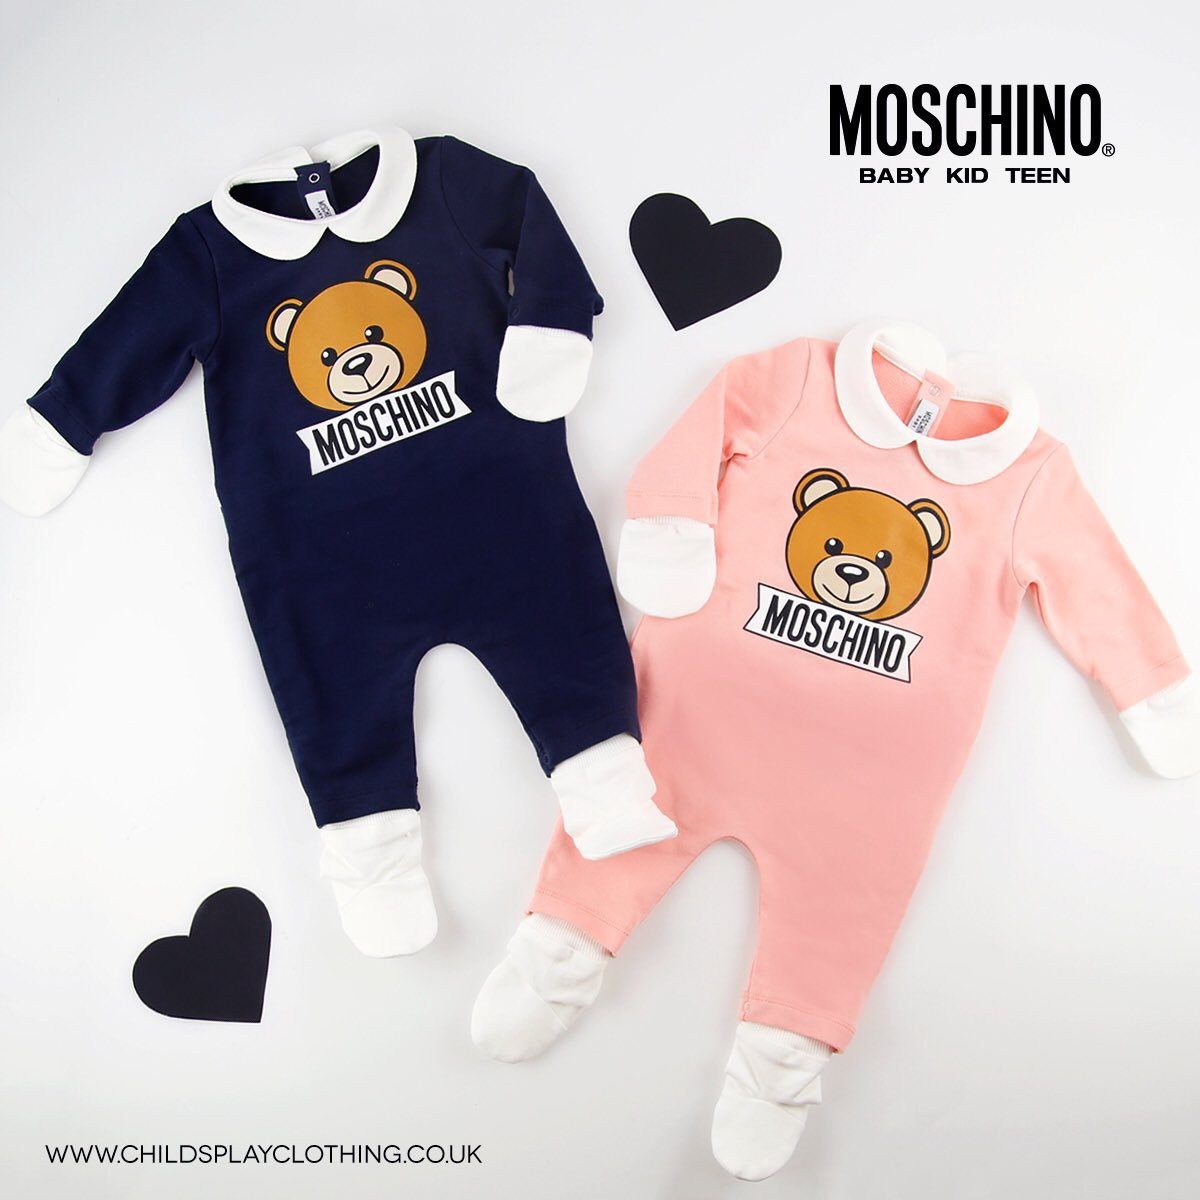 childsplay clothing on quot moschino https t co